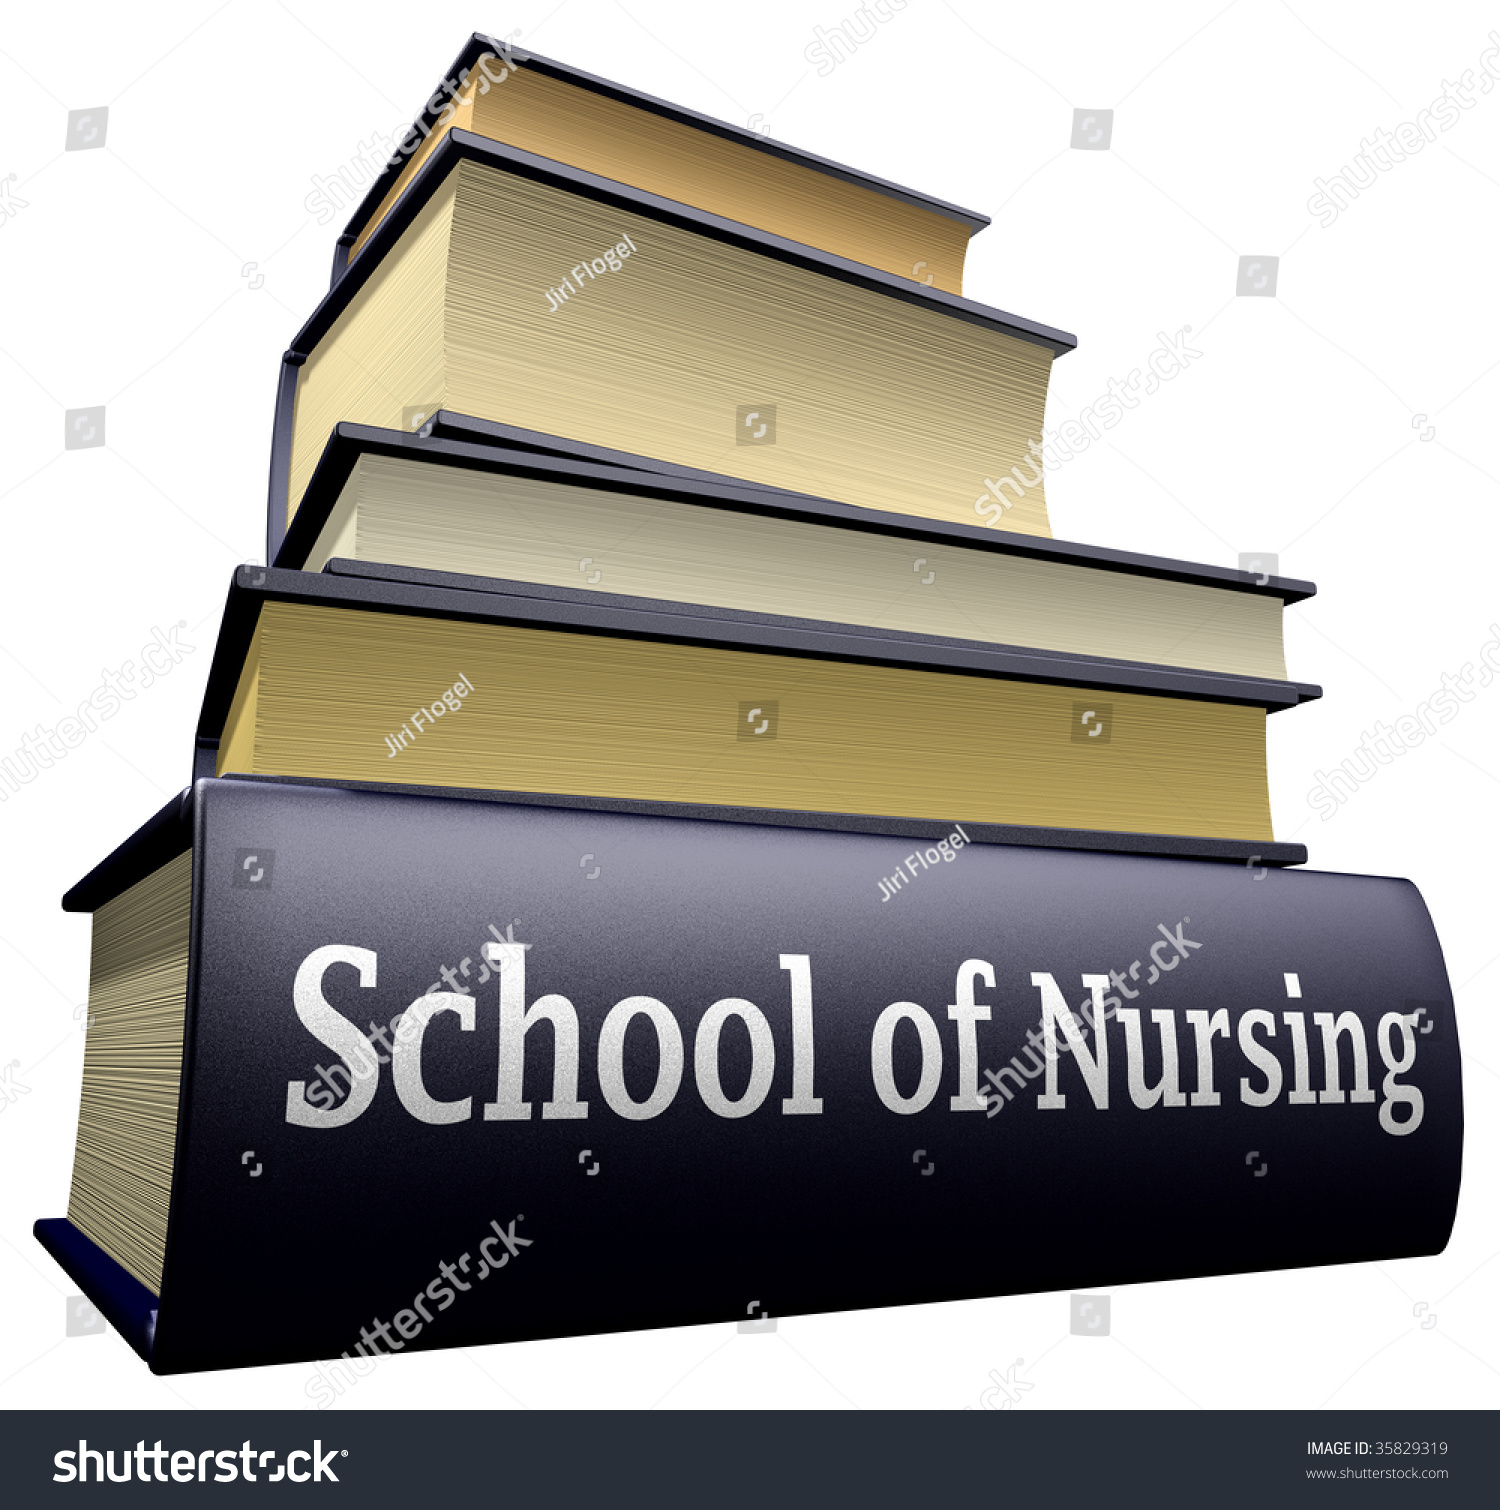 """the education of nursing In education, it refers to dramatic change in """"the nature of schooling, learning, and teaching and how curricular designs promote or inhibit learning, as well as excitement about the profession of nursing, and the spirit of inquiry necessary for the advancement of the discipline"""" (national league for nursing, 2003, p 1)."""